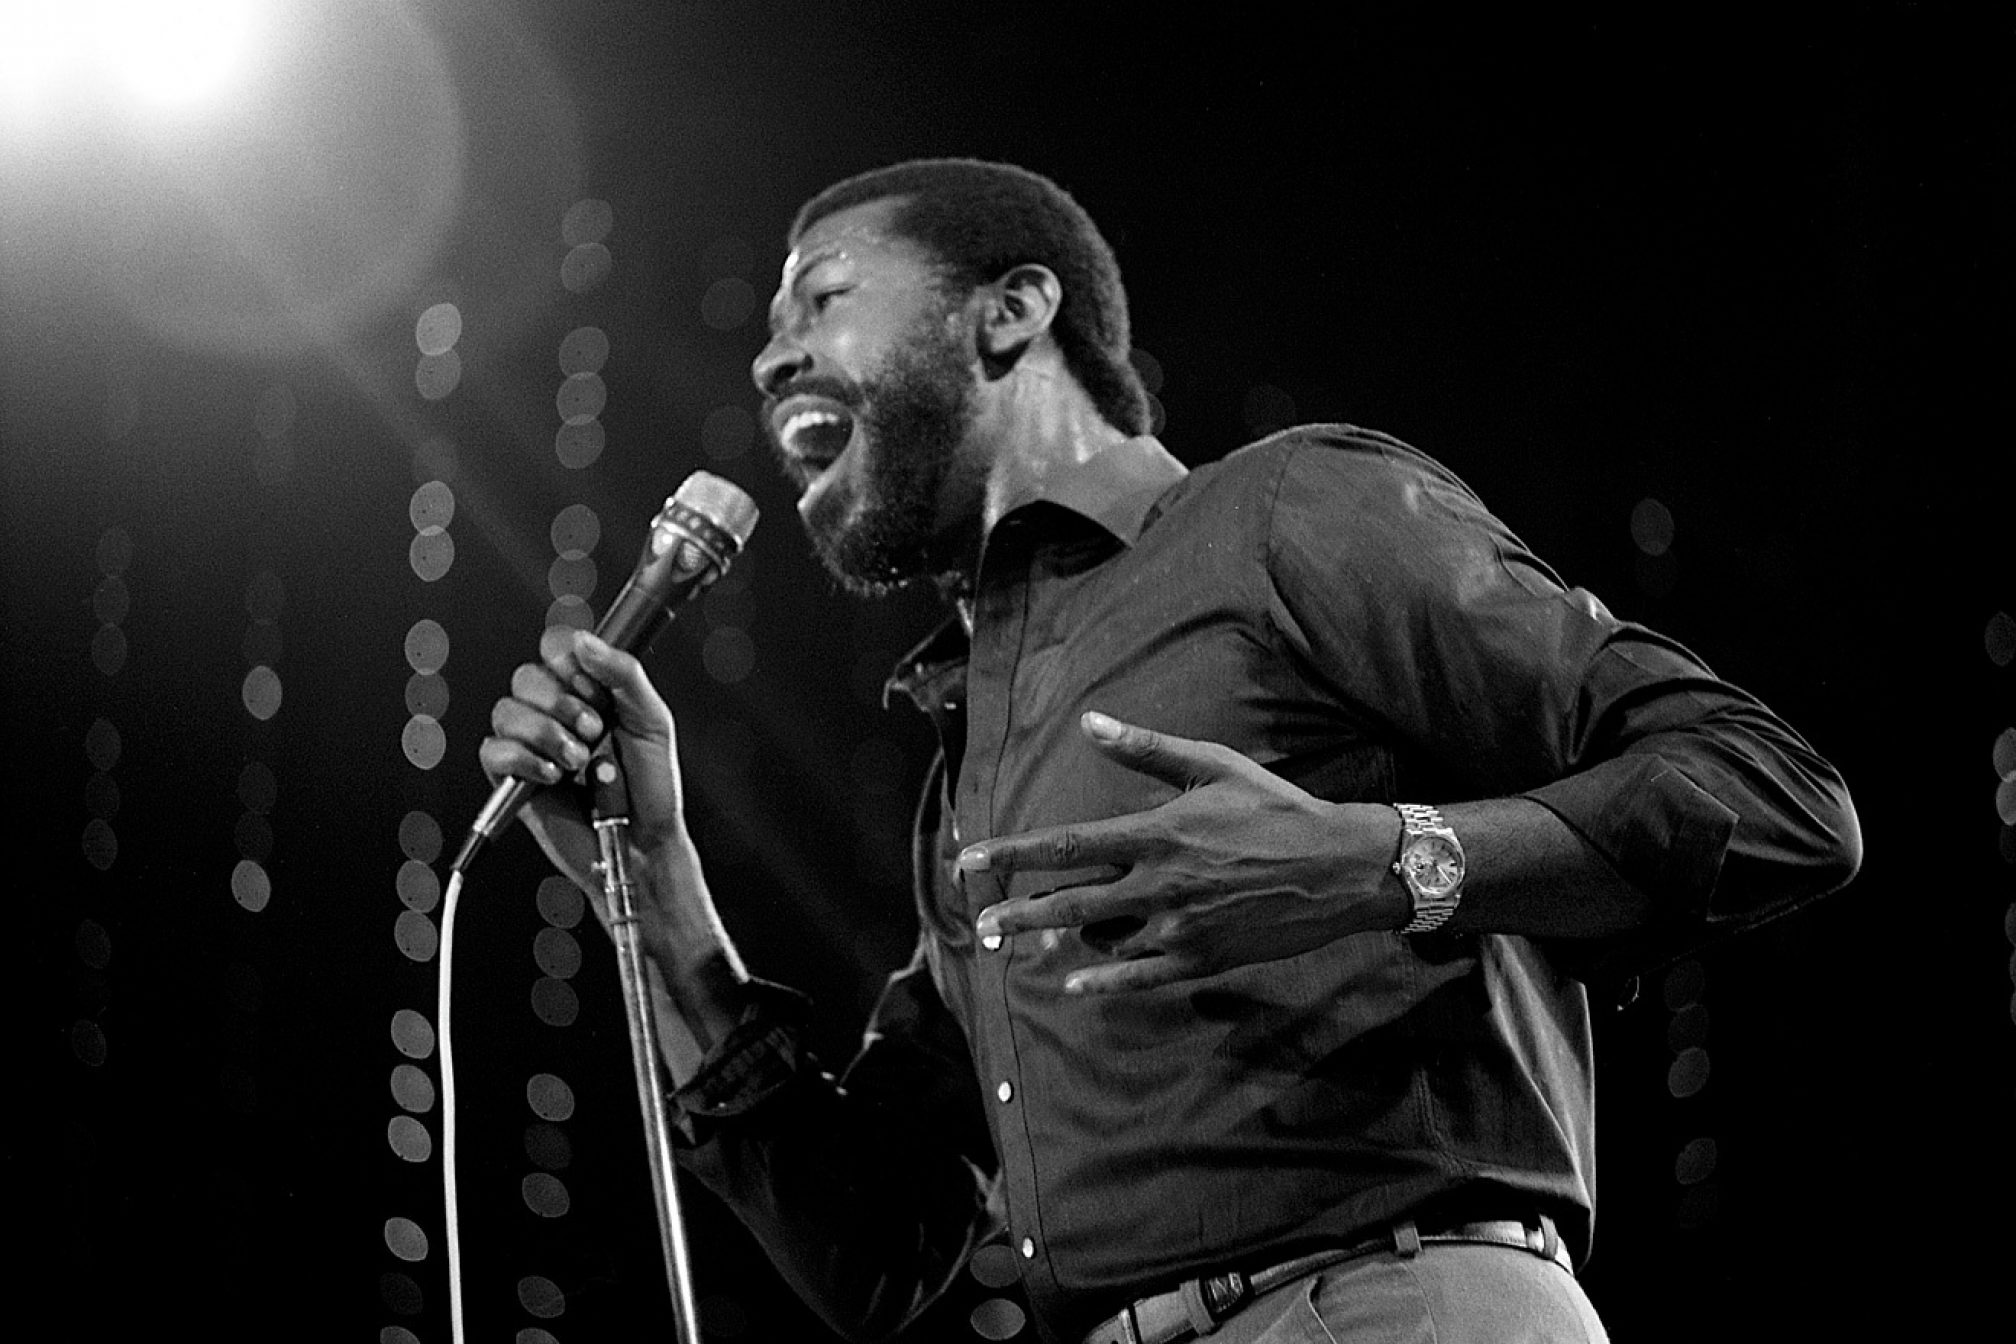 The incredible story of soul singer Teddy Pendergrass